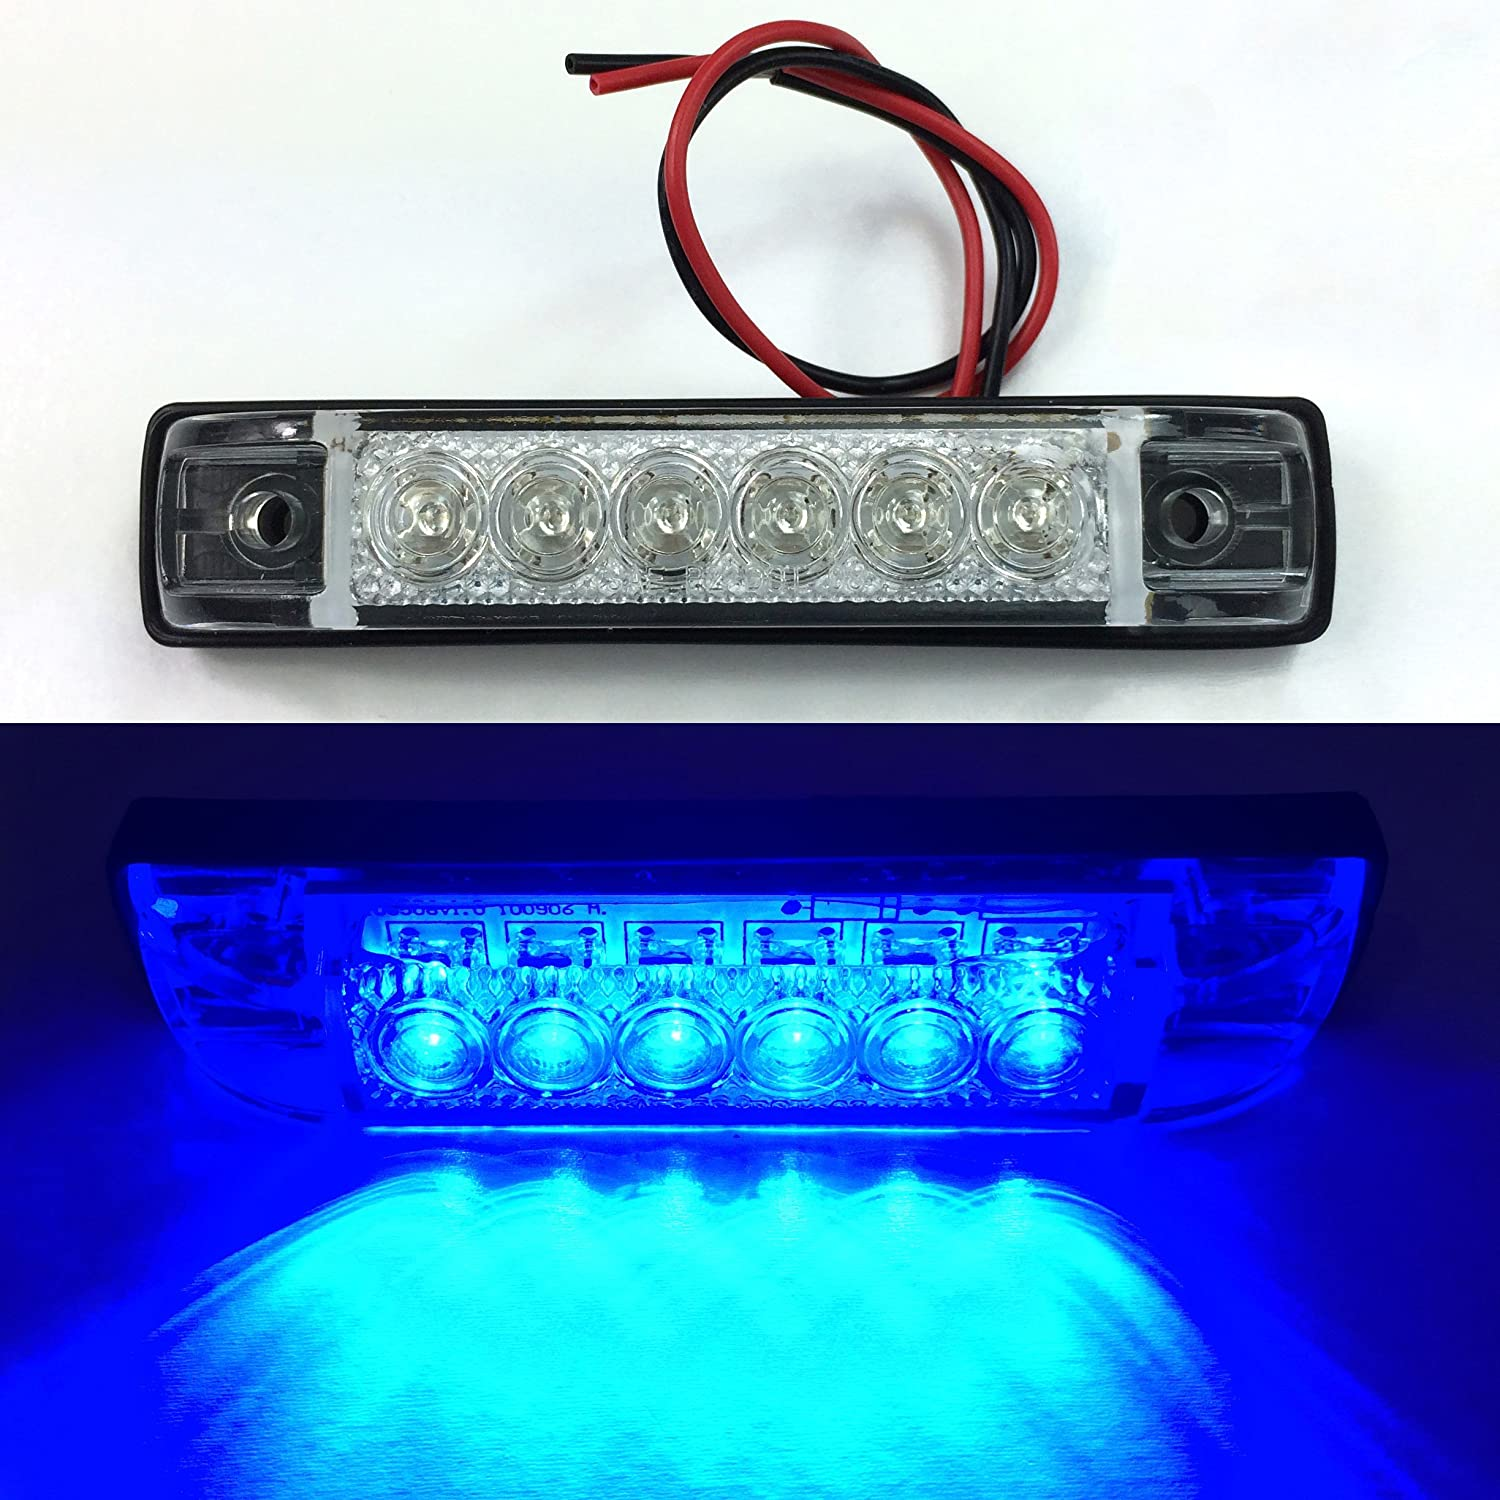 Amazon.com LONG HAUL CLEAR BLUE LED SLIM LINE LED UTILITY STRIP LIGHT 6 LEDS 4 x1  RVS MARINE BOATS Automotive  sc 1 st  Amazon.com & Amazon.com: LONG HAUL CLEAR BLUE LED SLIM LINE LED UTILITY STRIP ... azcodes.com